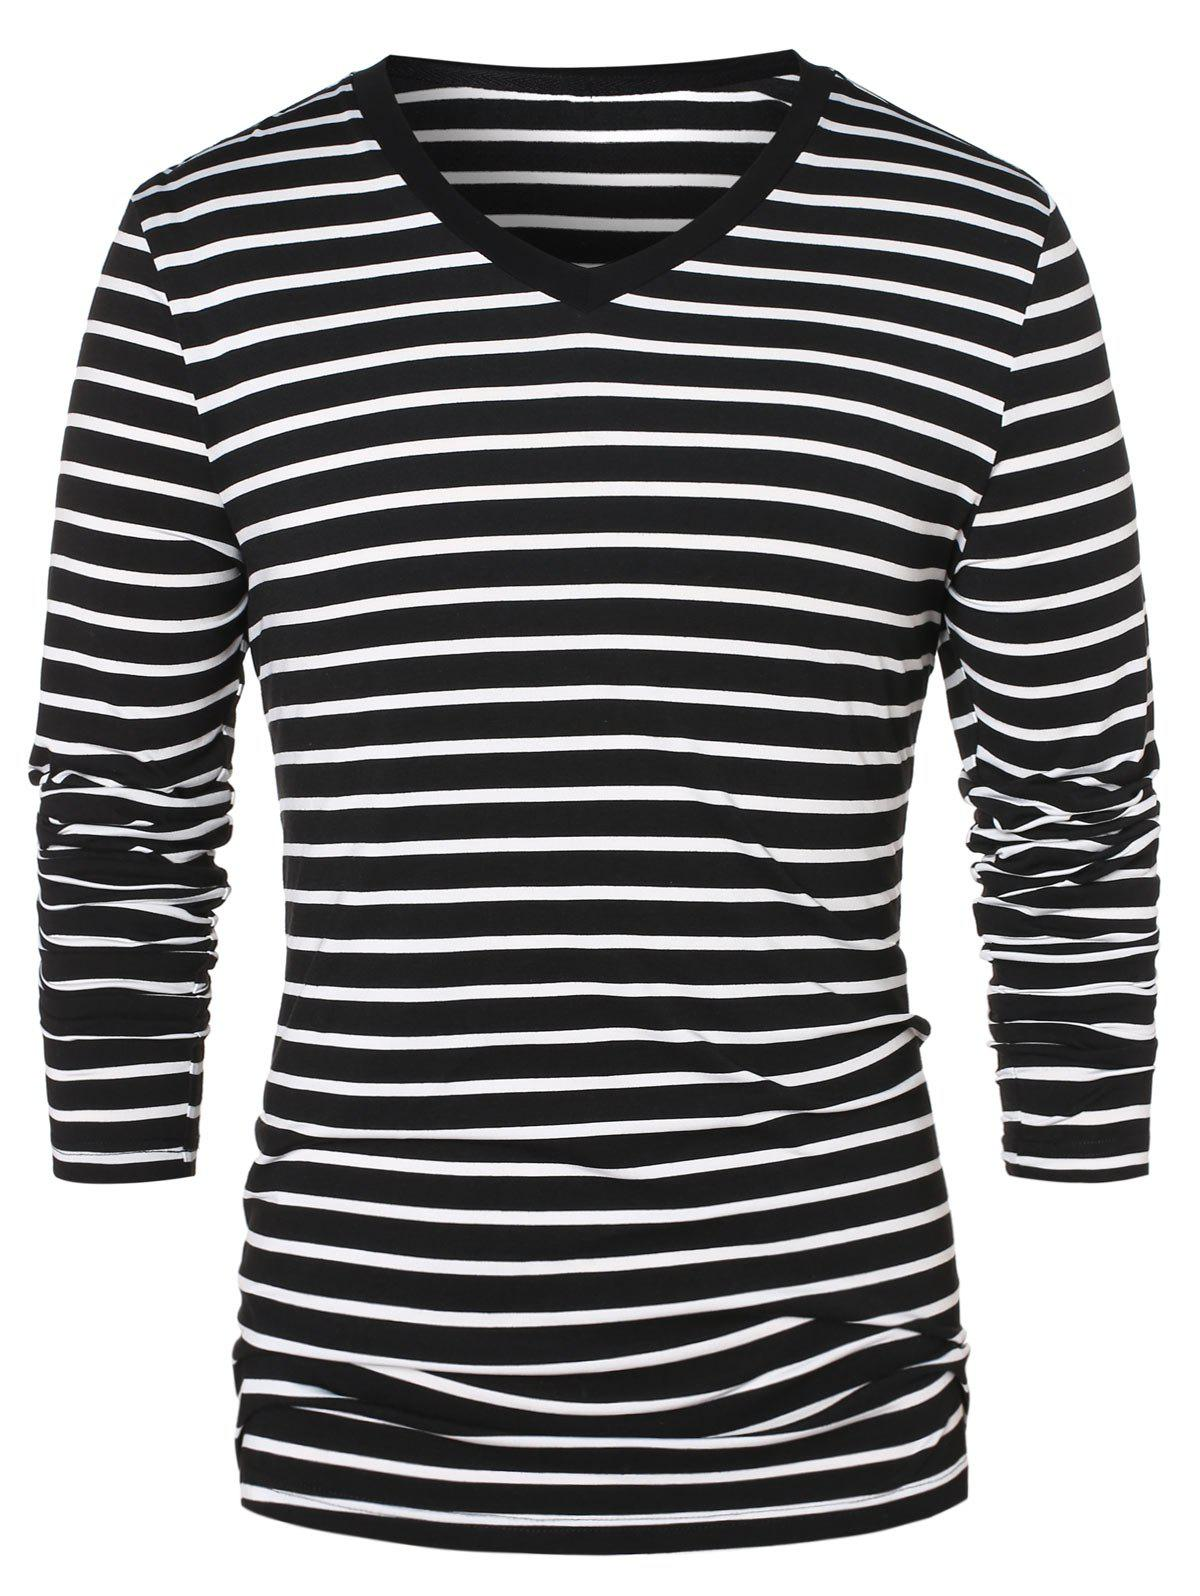 Trendy V Neck Long Sleeve Striped Top